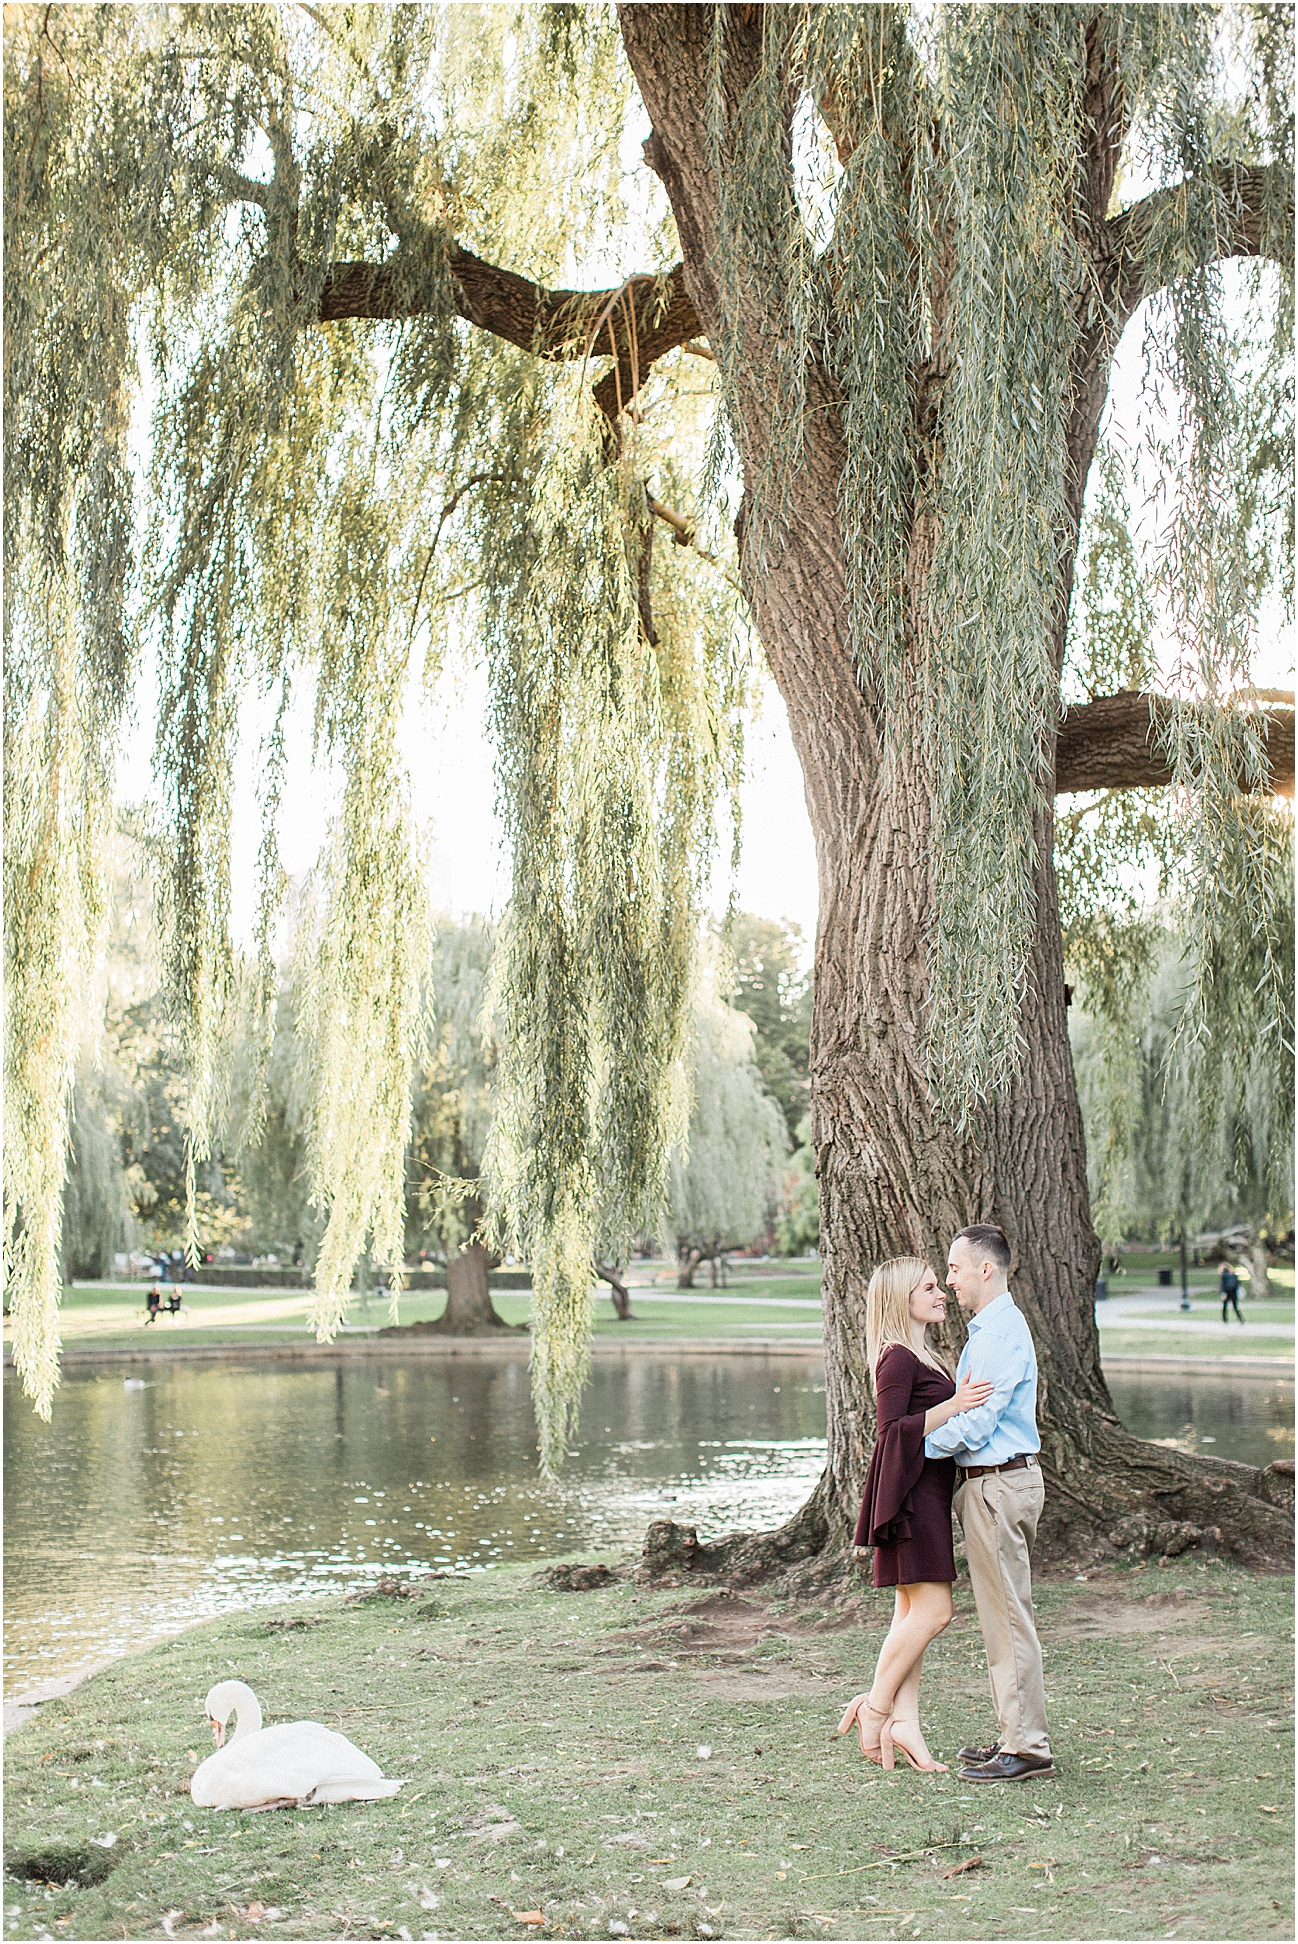 jenny_jared_beacon_hill_acorn_street_seaport_engagement_fall_cape_cod_boston_wedding_photographer_meredith_jane_photography_photo_1531.jpg